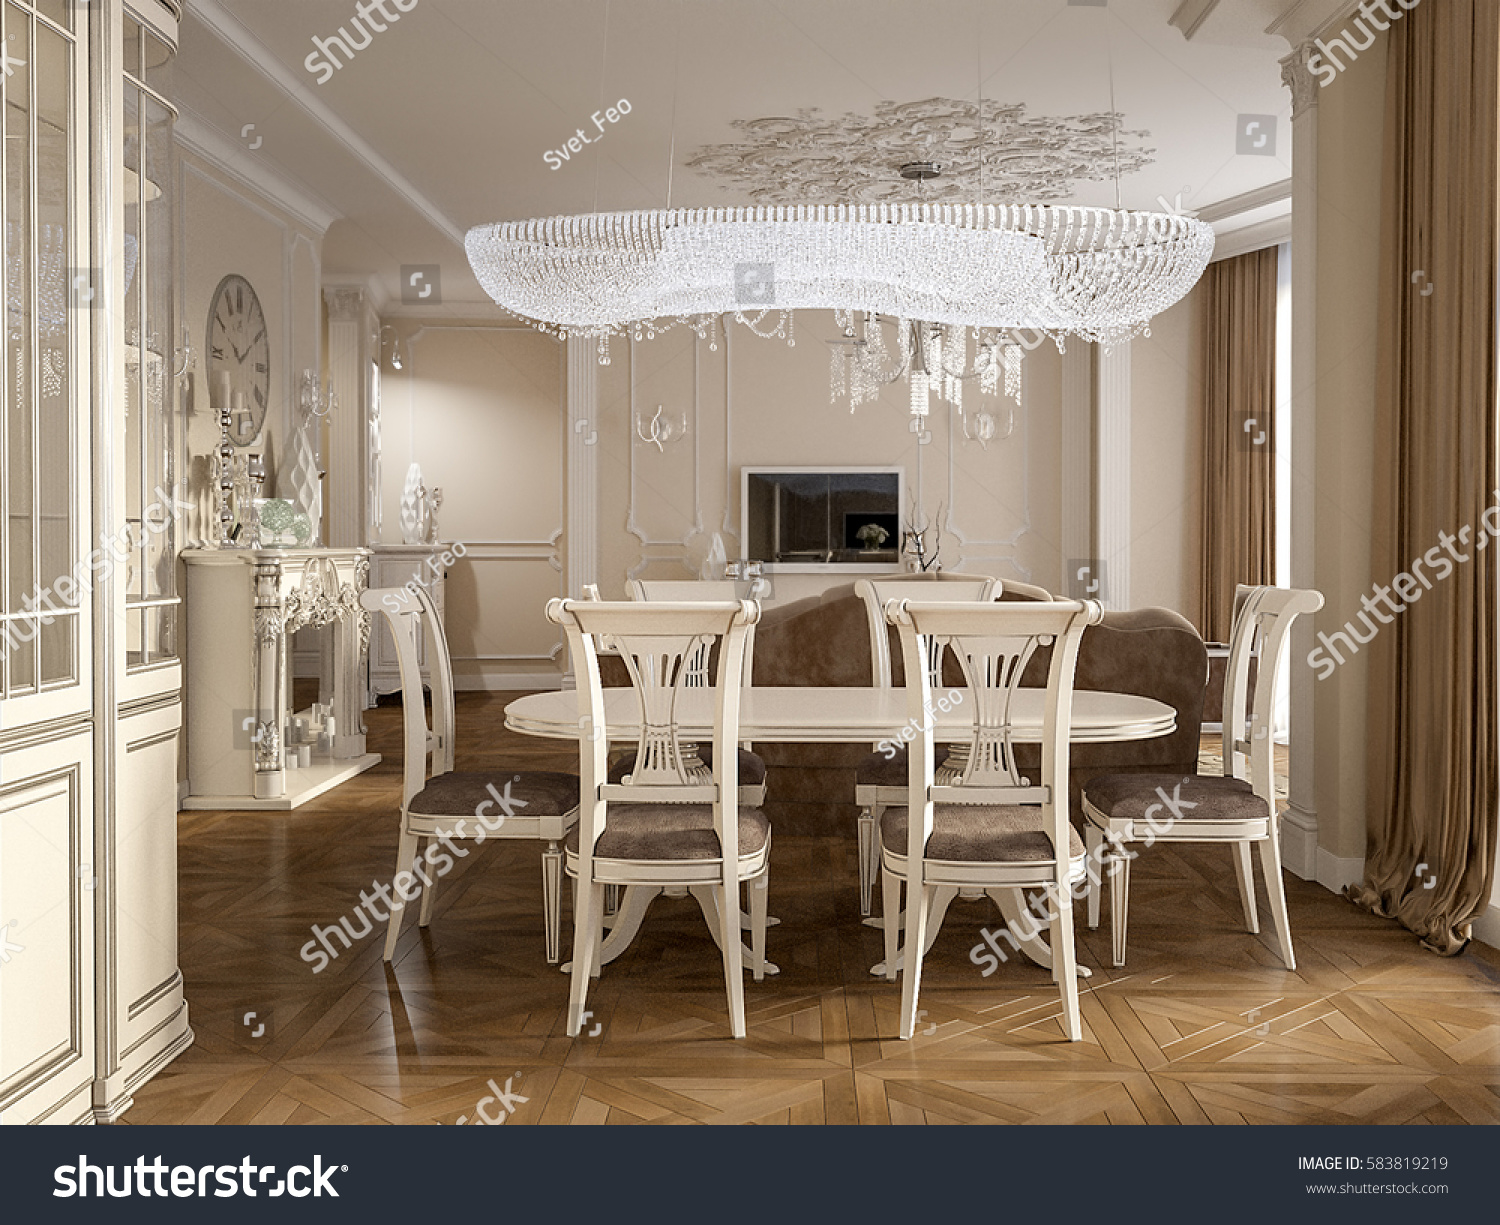 luxury classic interior of dining room kitchen and living room with white furniture and crystal